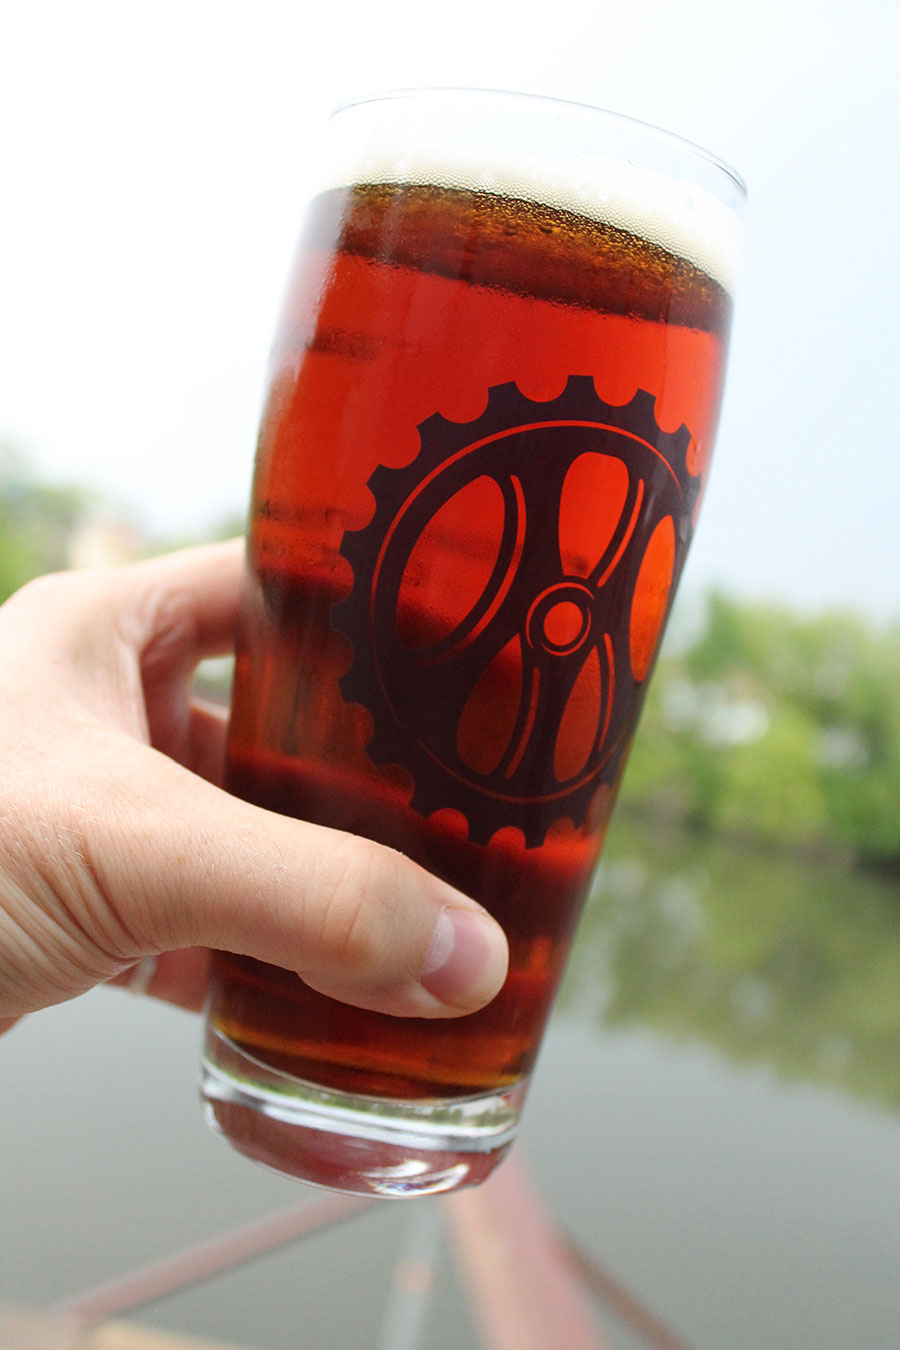 My half-liter glass of Cold Hope on the river overlook of the Metropolitan taproom